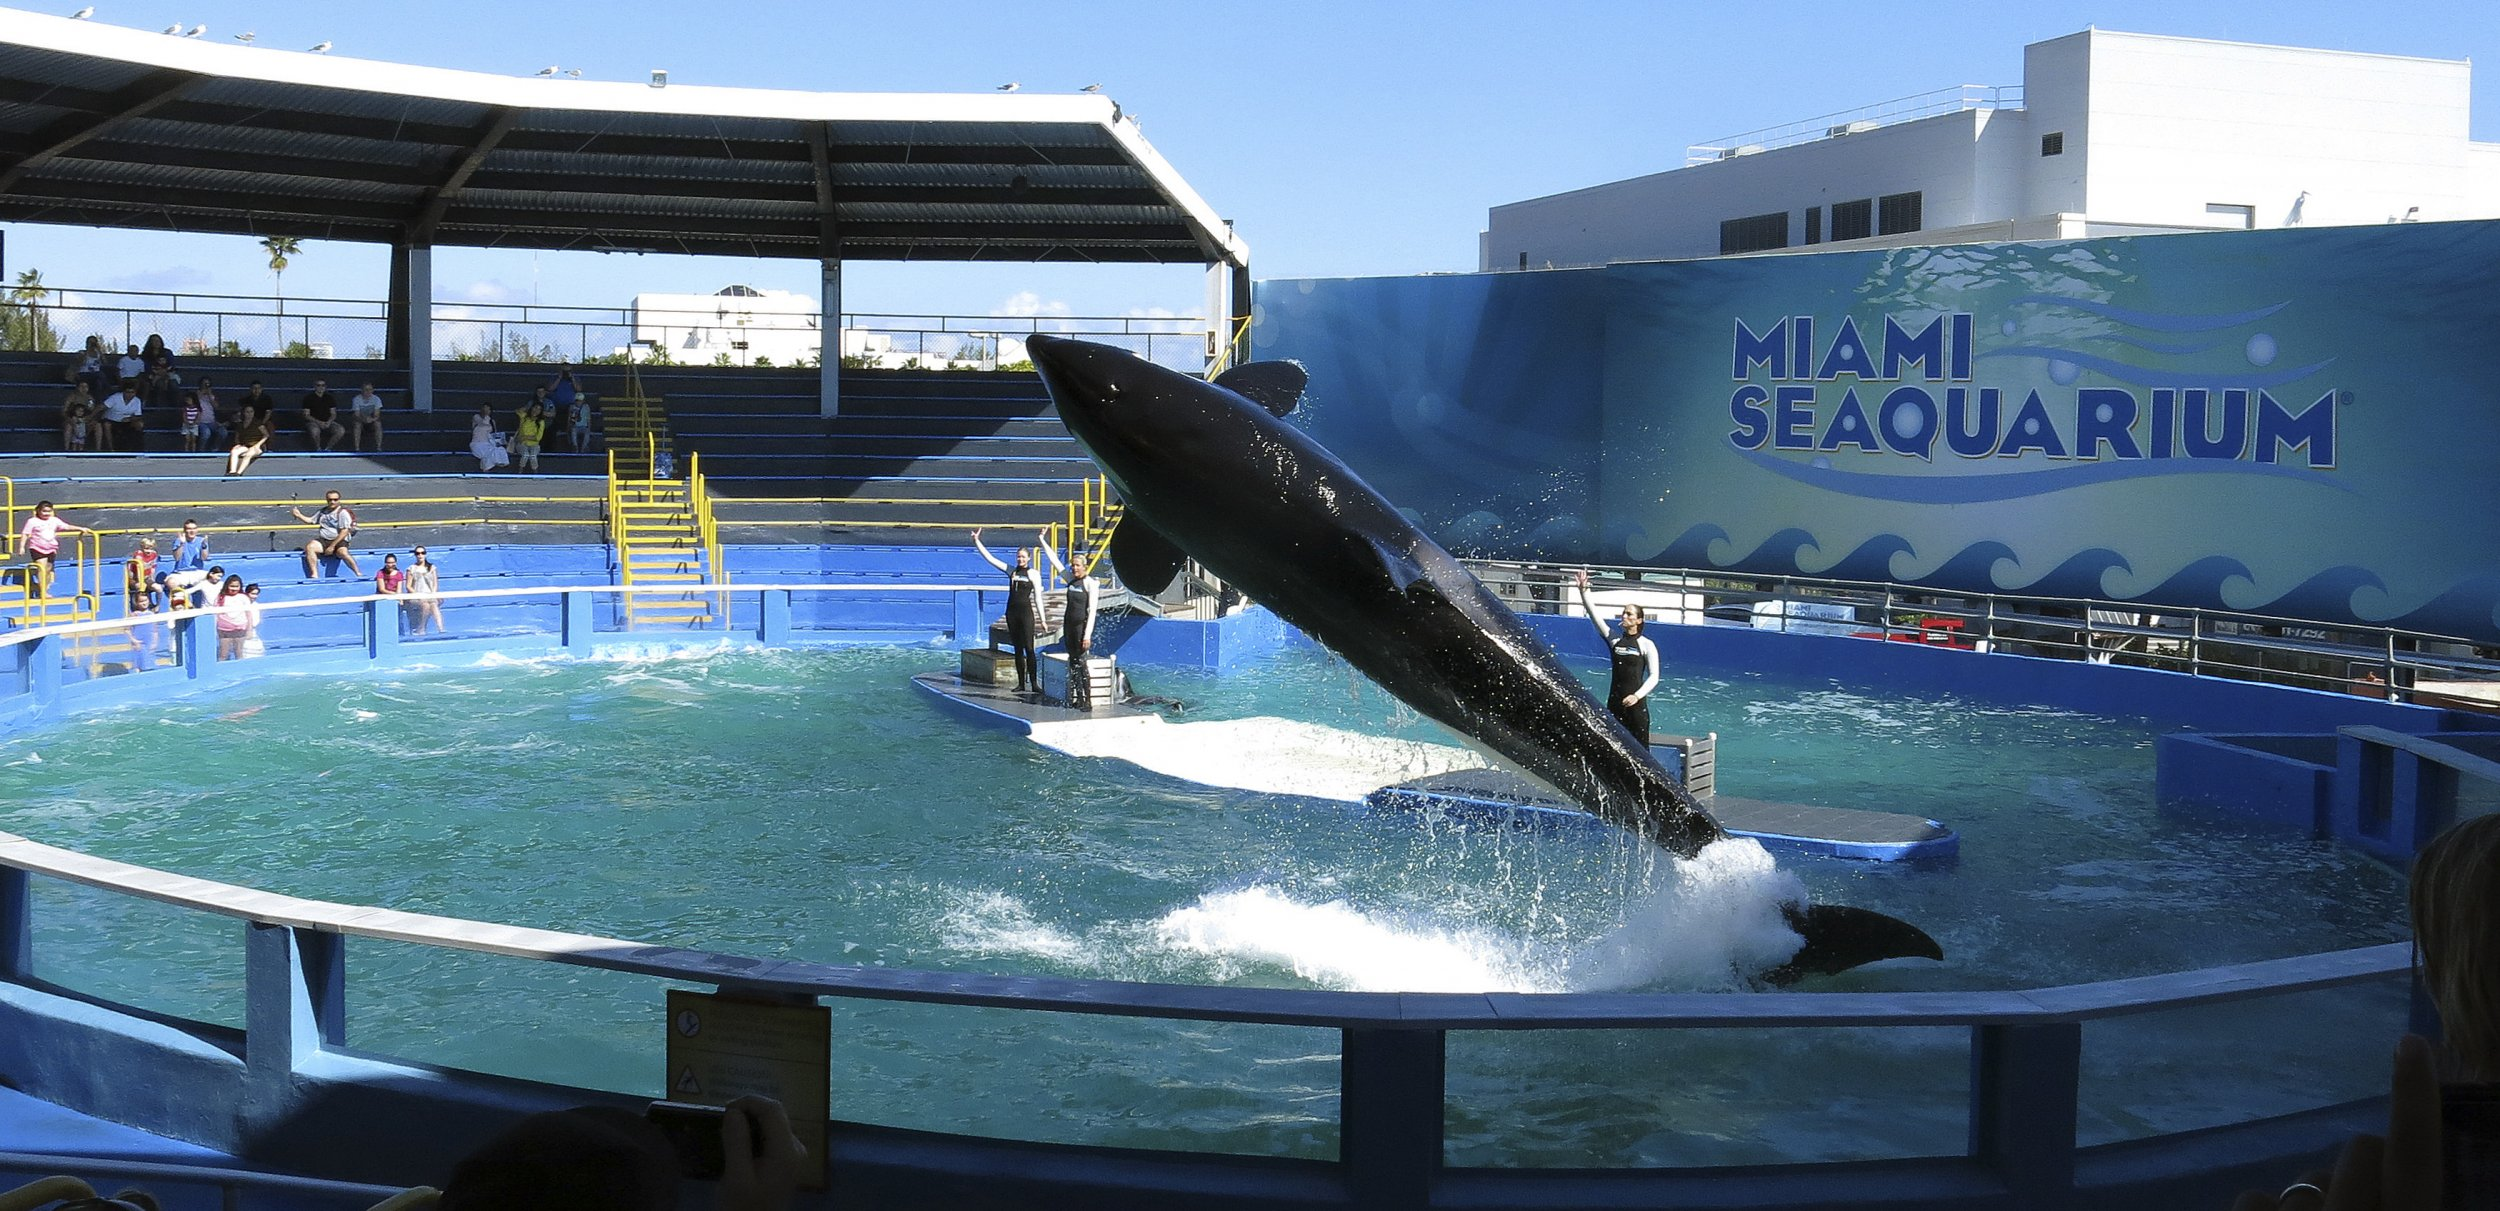 A 52-year-old whale could be about to return home after being kept in captivity for most of her life